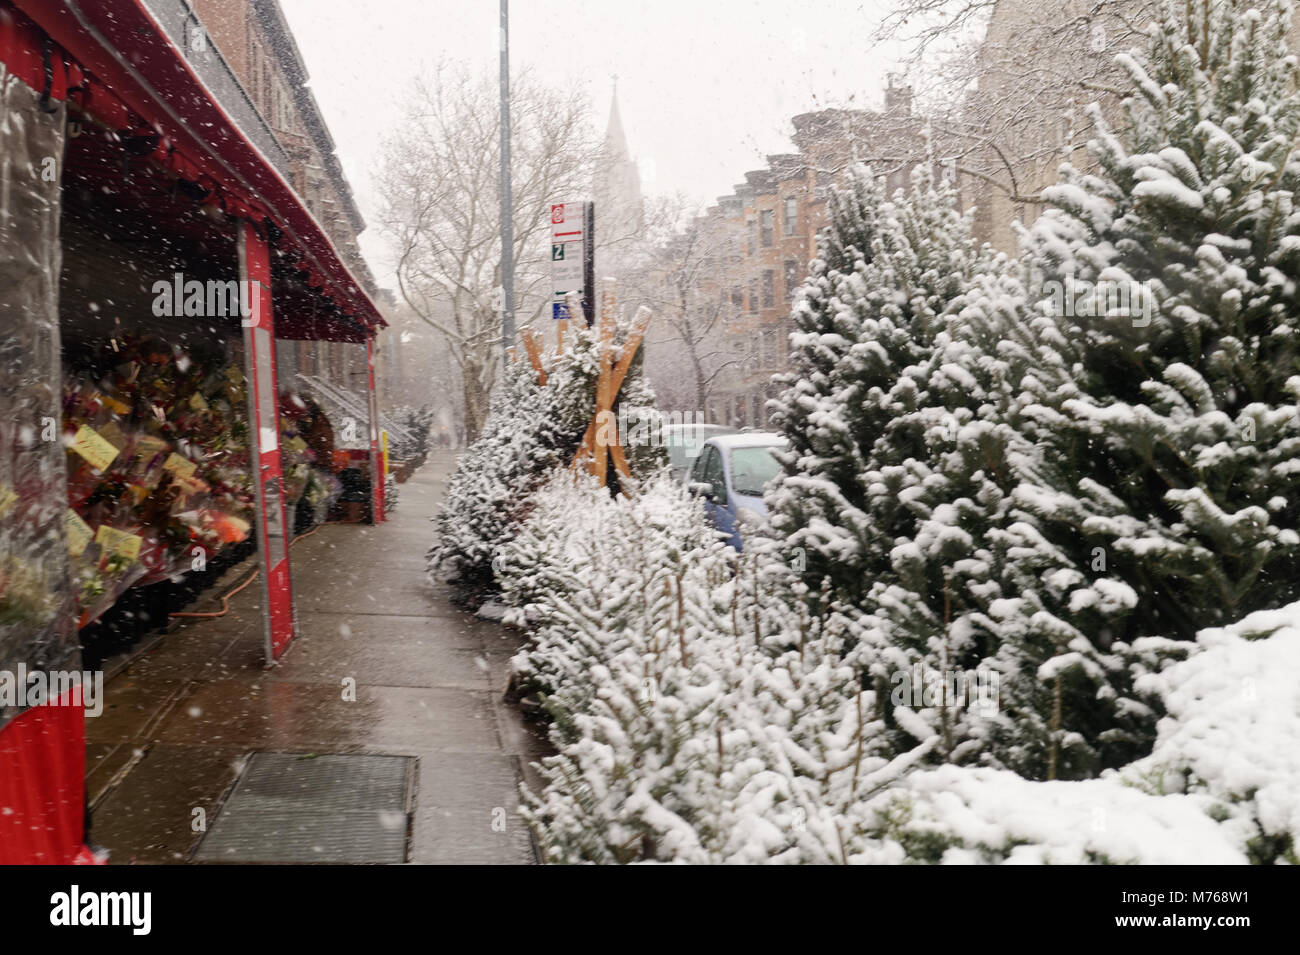 Snow covered Christmas trees for sale at a deli lined up on a Brooklyn sidewalk during a light snowfall. - Stock Image